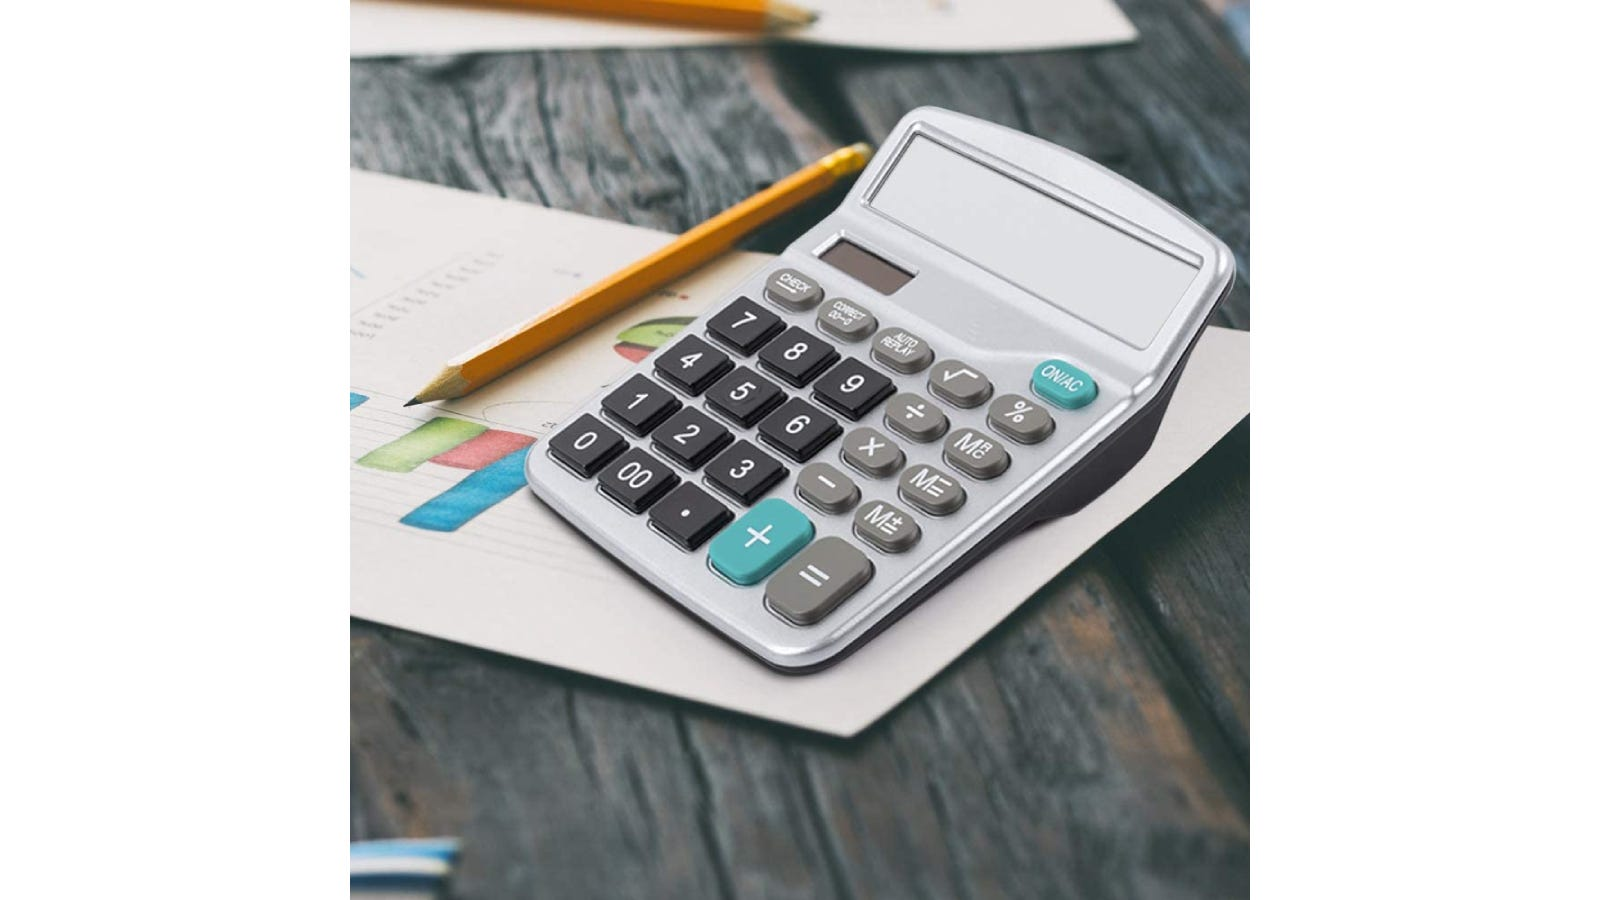 A basic calculator sitting on a desk next to papers.